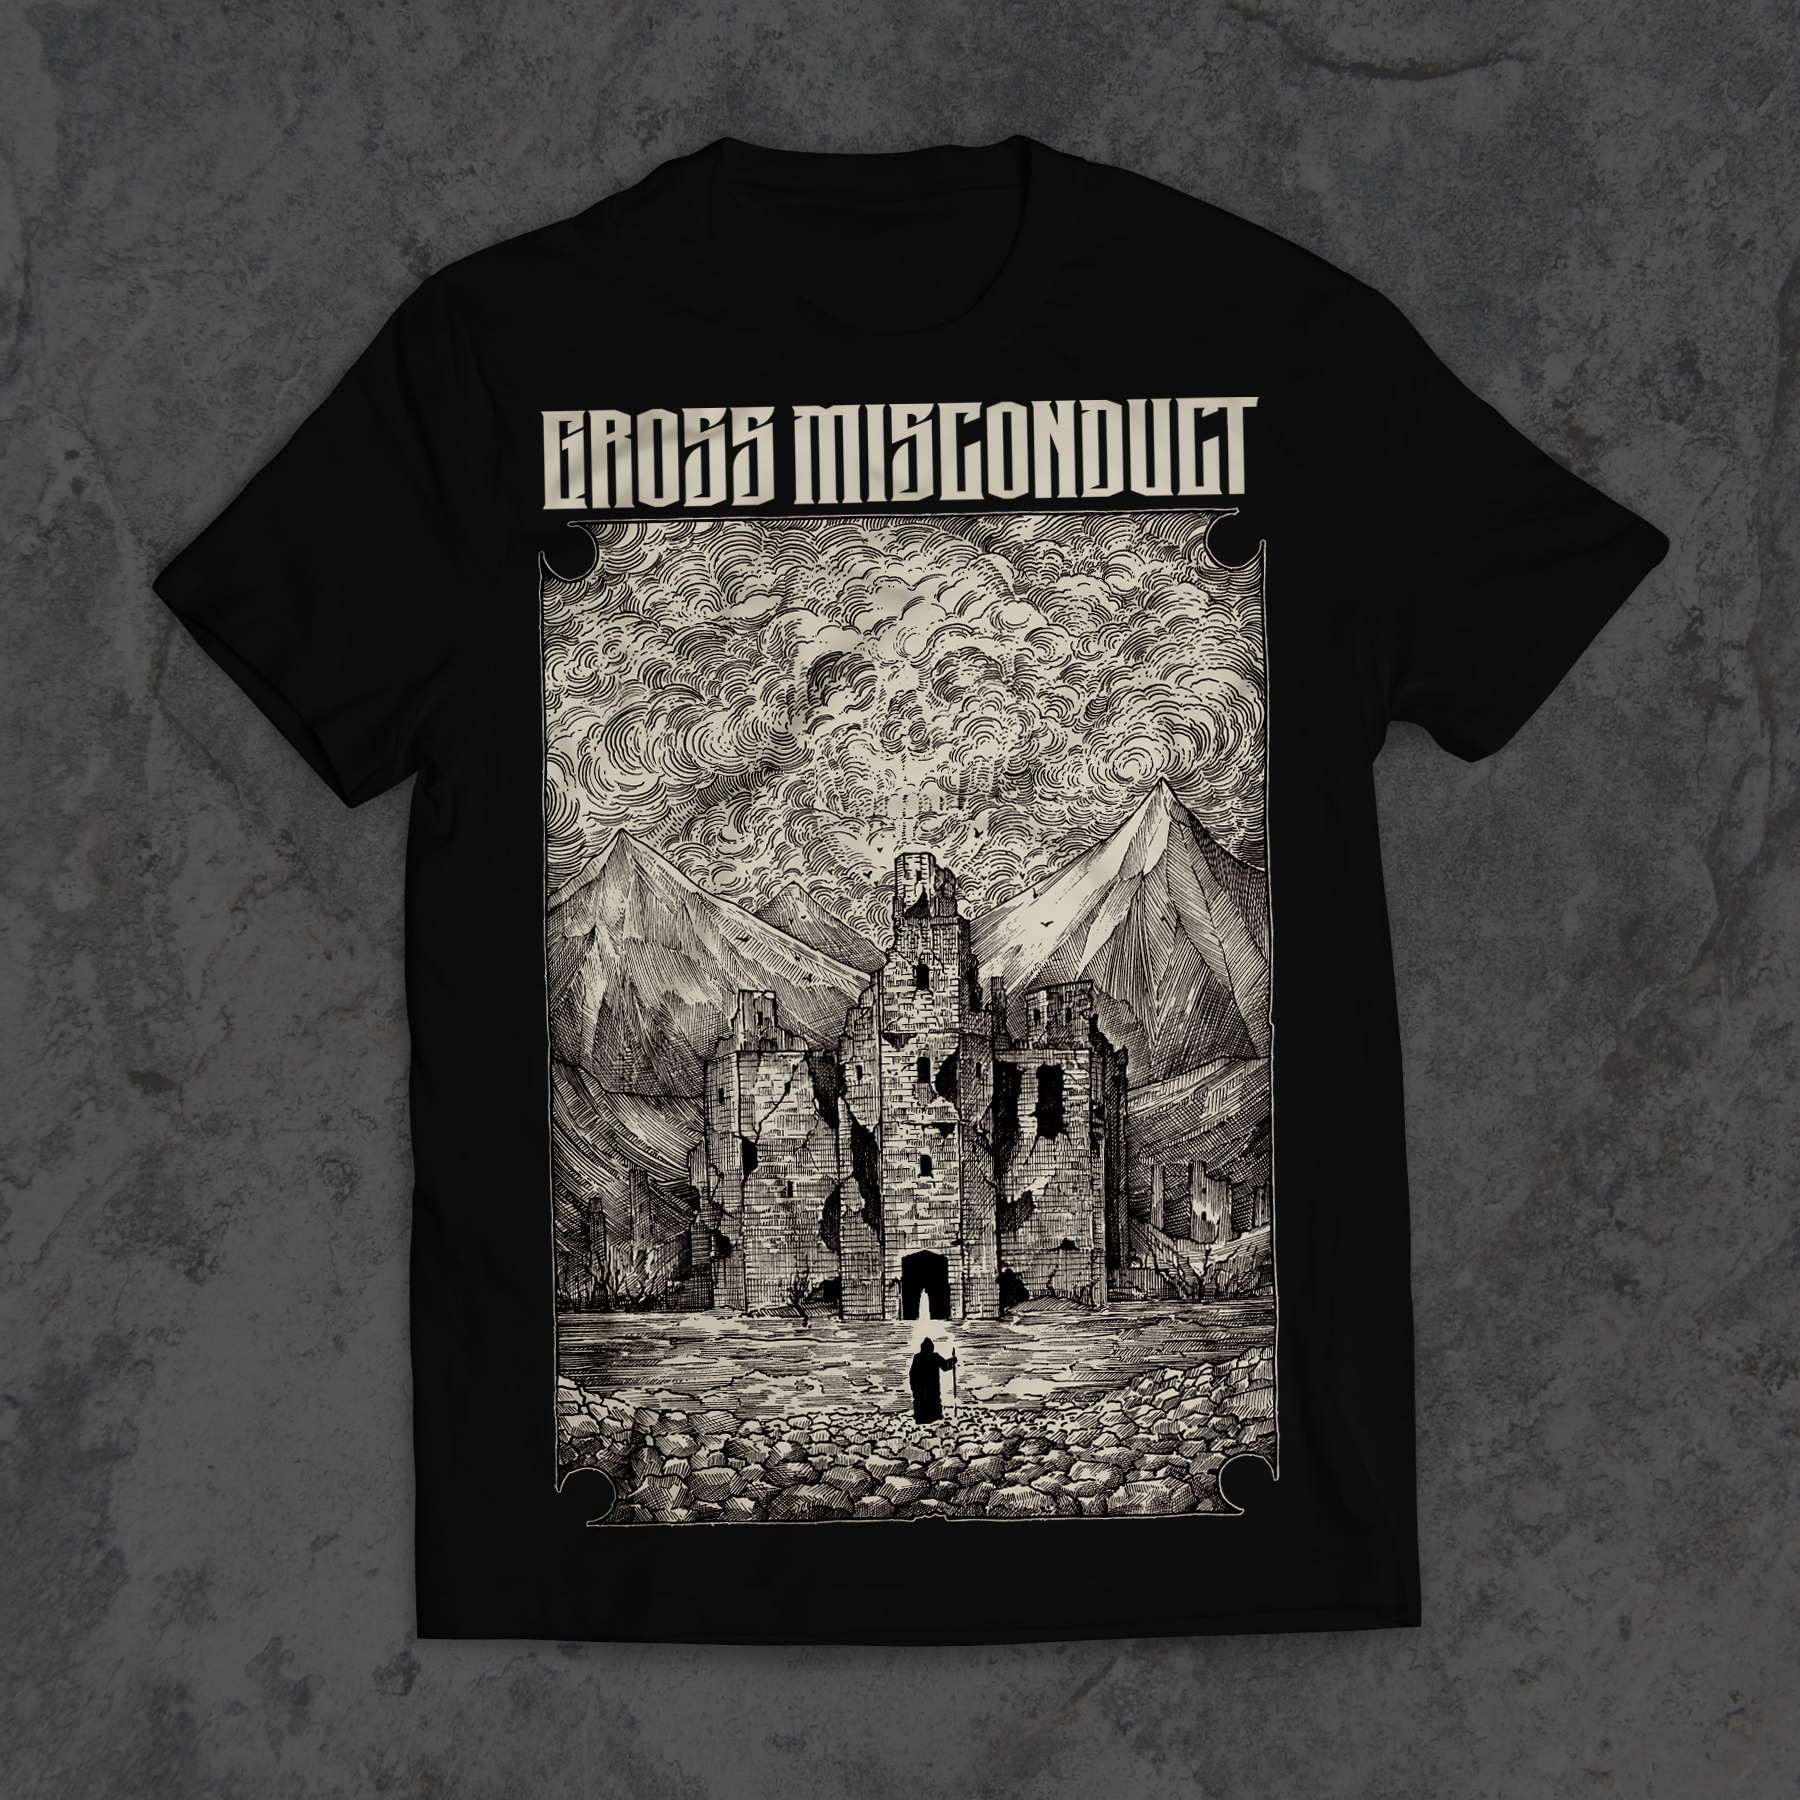 New GM shirts out now. Order at  https://grossmisconduct.bandcamp.com/merch/castle-t-shirt